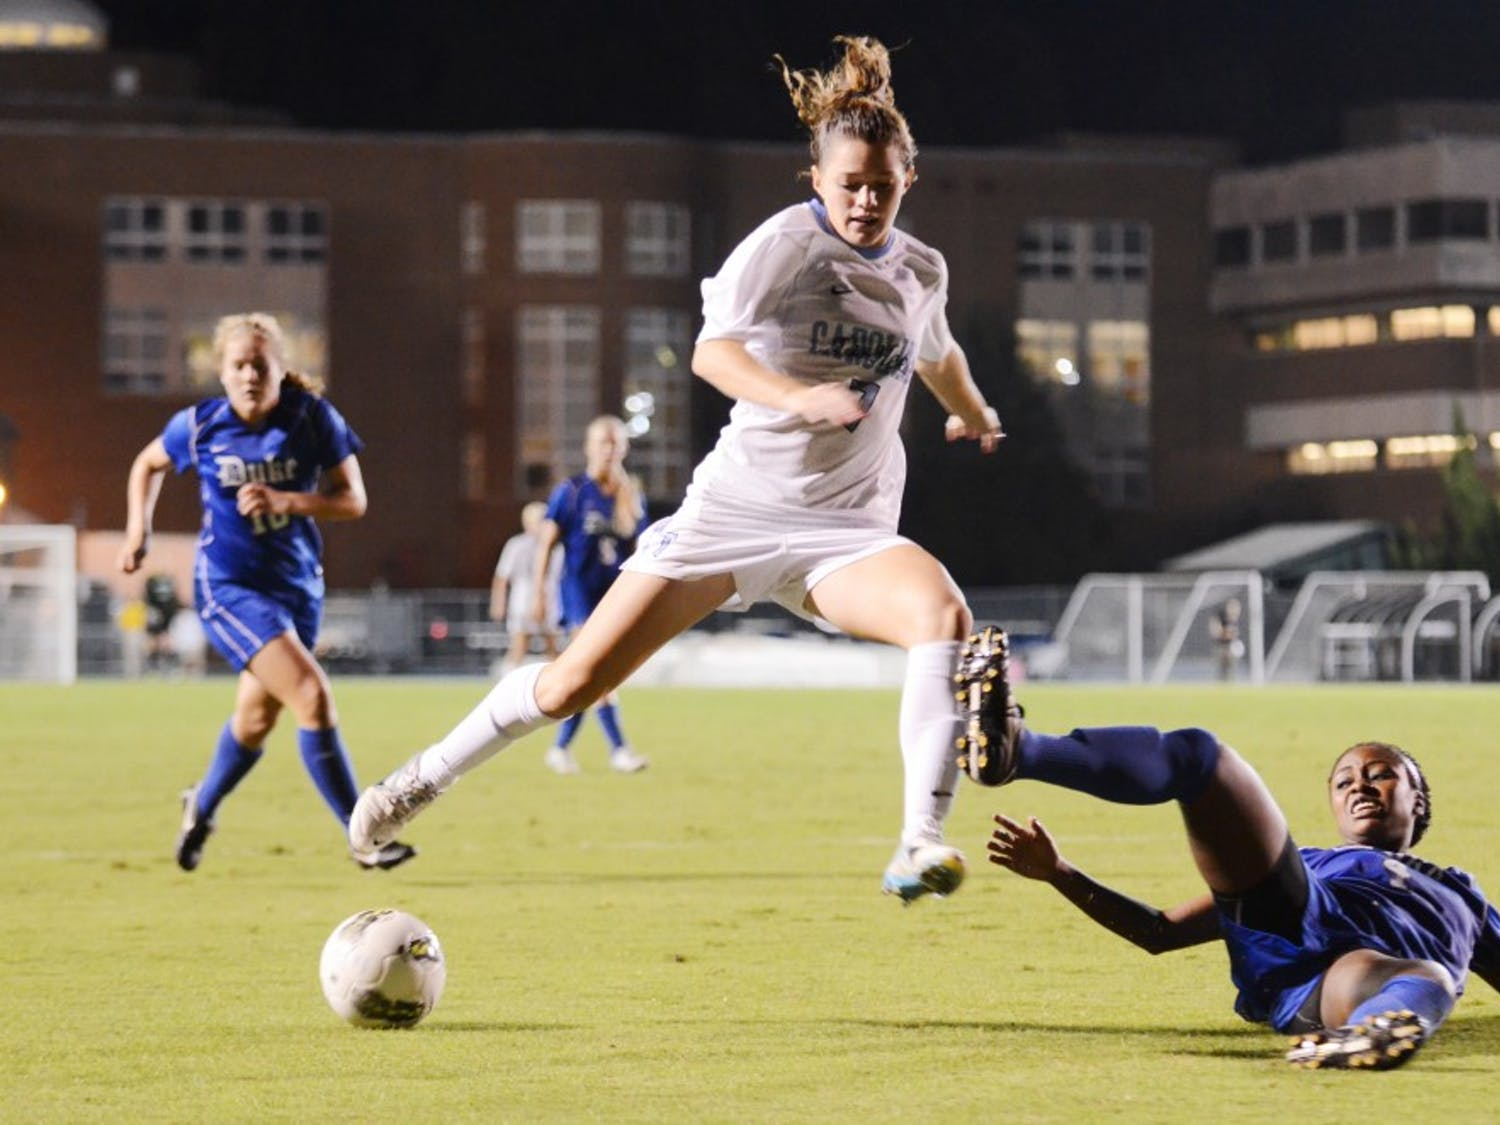 Kealia Ohai jumps over a fallen player and dribbles down Fetzer Field. Ohai scored the winning goal against the Blue Devils in the 88th minute.